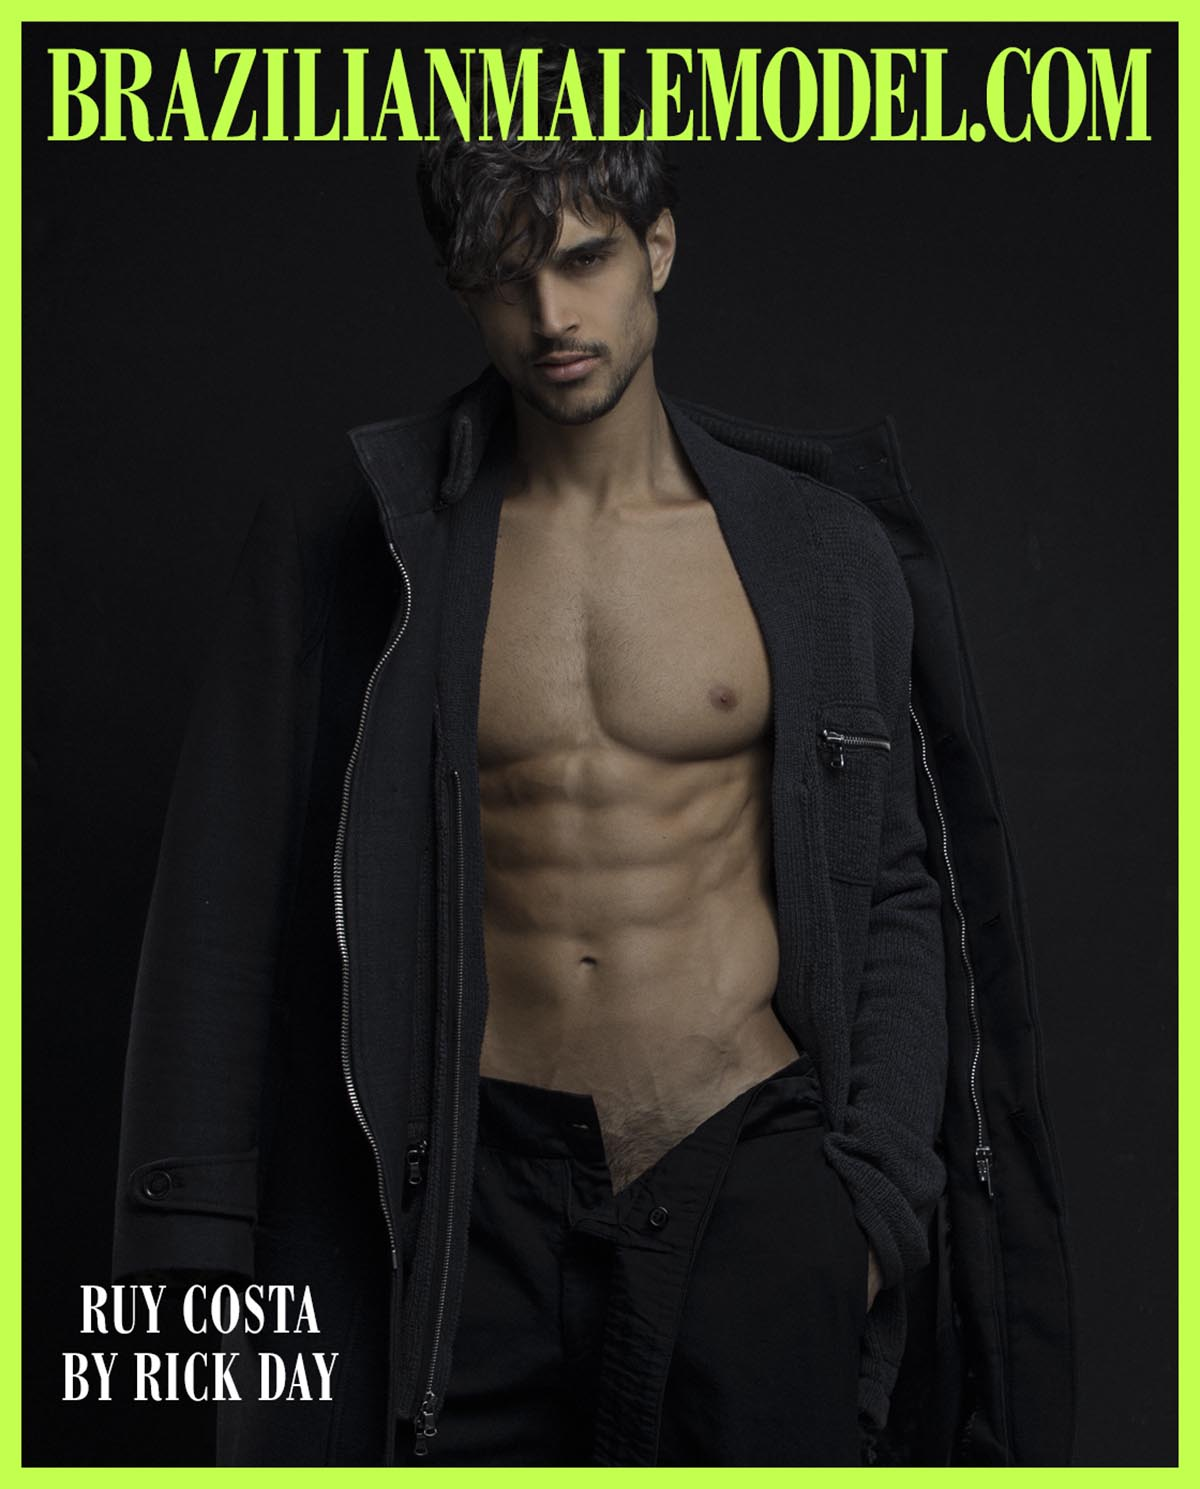 Ruy Costa X Rick Day x Brazilian Male Model X YUP MAGAZINE